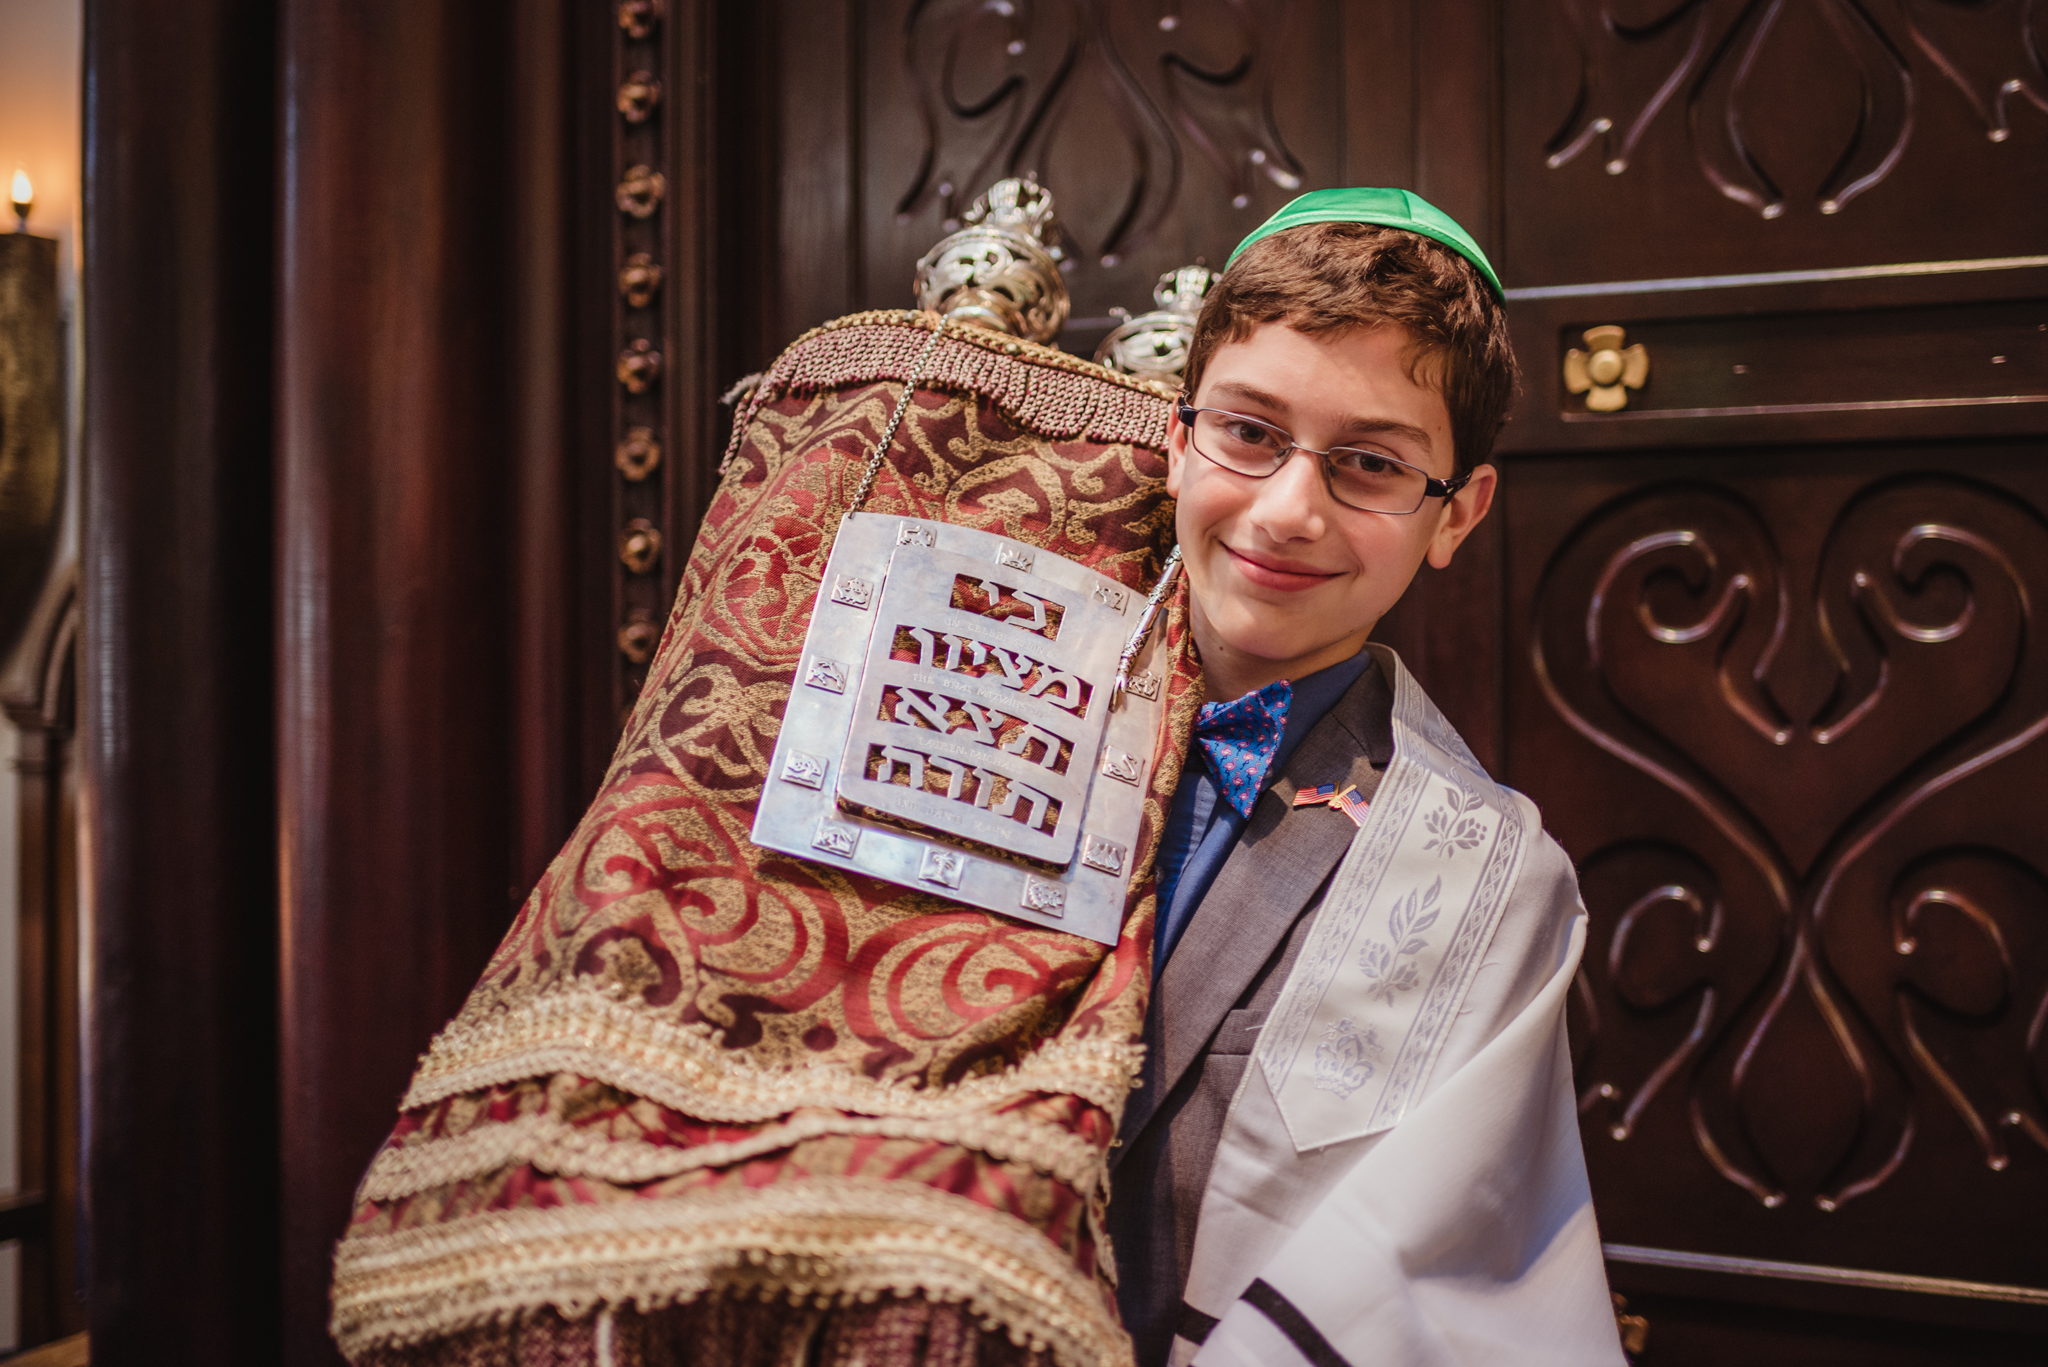 the-mitzvah-boy-posing-with-the-torah-in-front-of-the-ark-in-Temple-Beth-Or-in-Raleigh.jpg